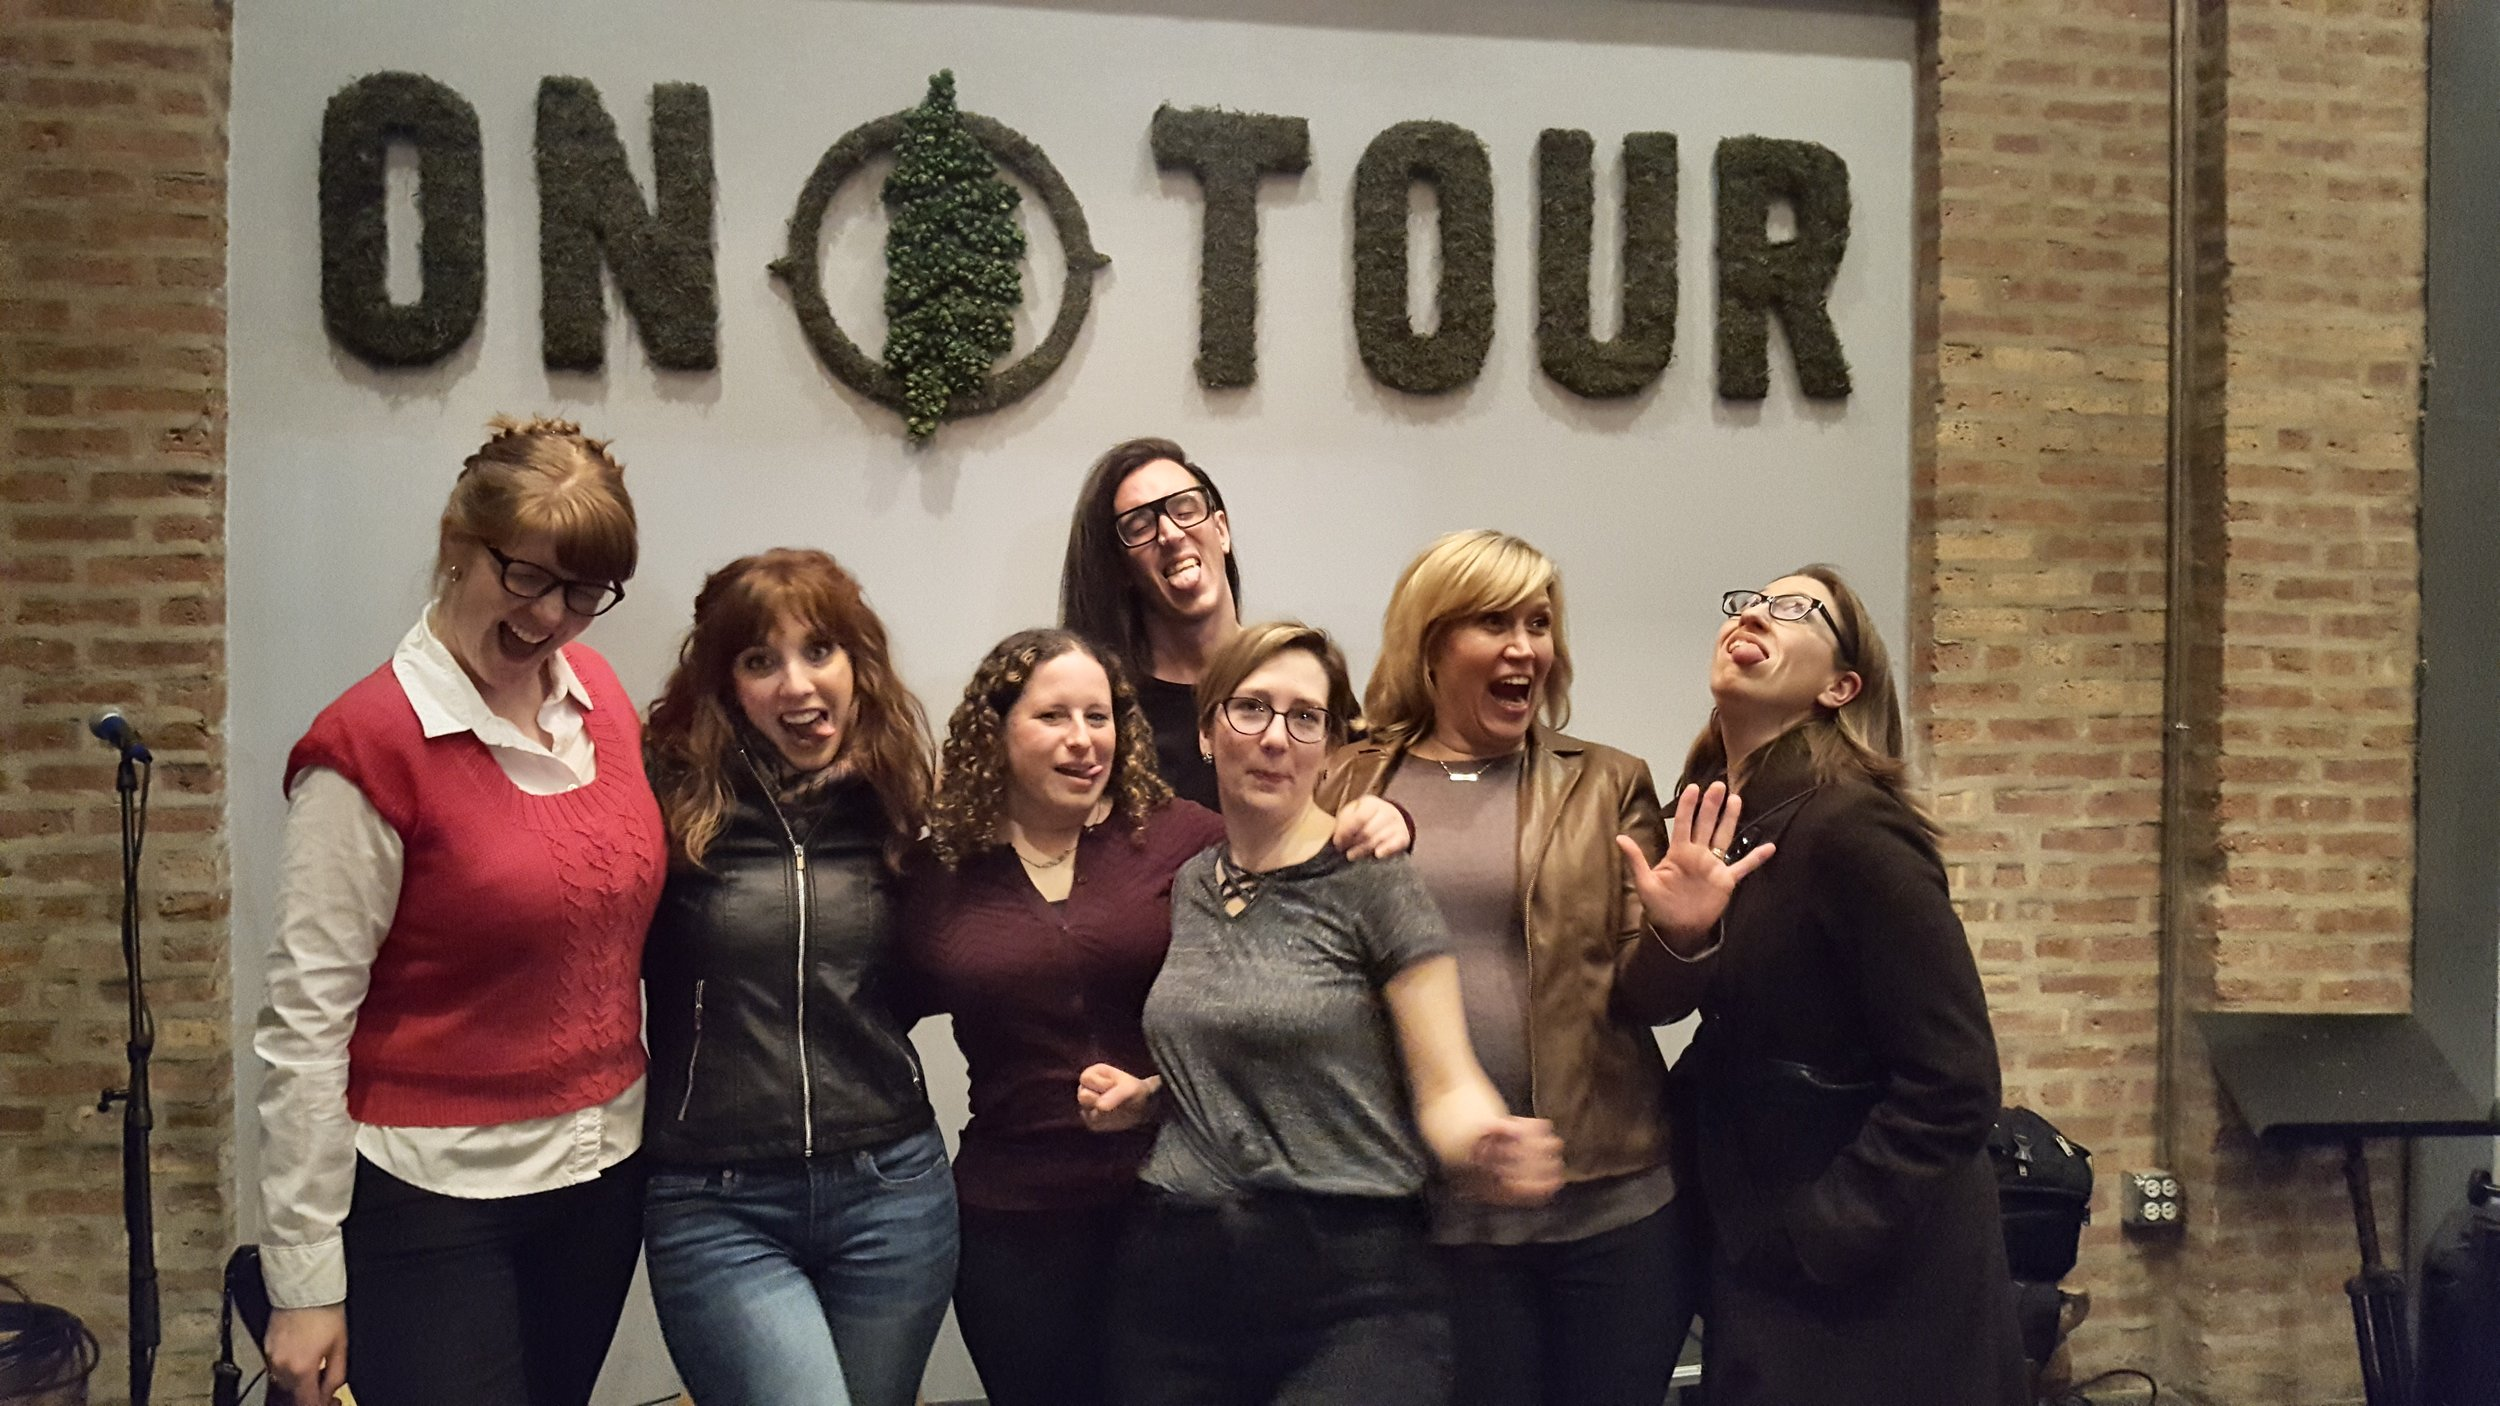 From left: Megan Grandstaff, Jackie Mantey, Jessica Katz, Wesley Fuentes, Christina Brandon, Elaine Quinn, Elisa Luth. (Not pictured: reader Mona Luan and guest co-host Mindy Watters).